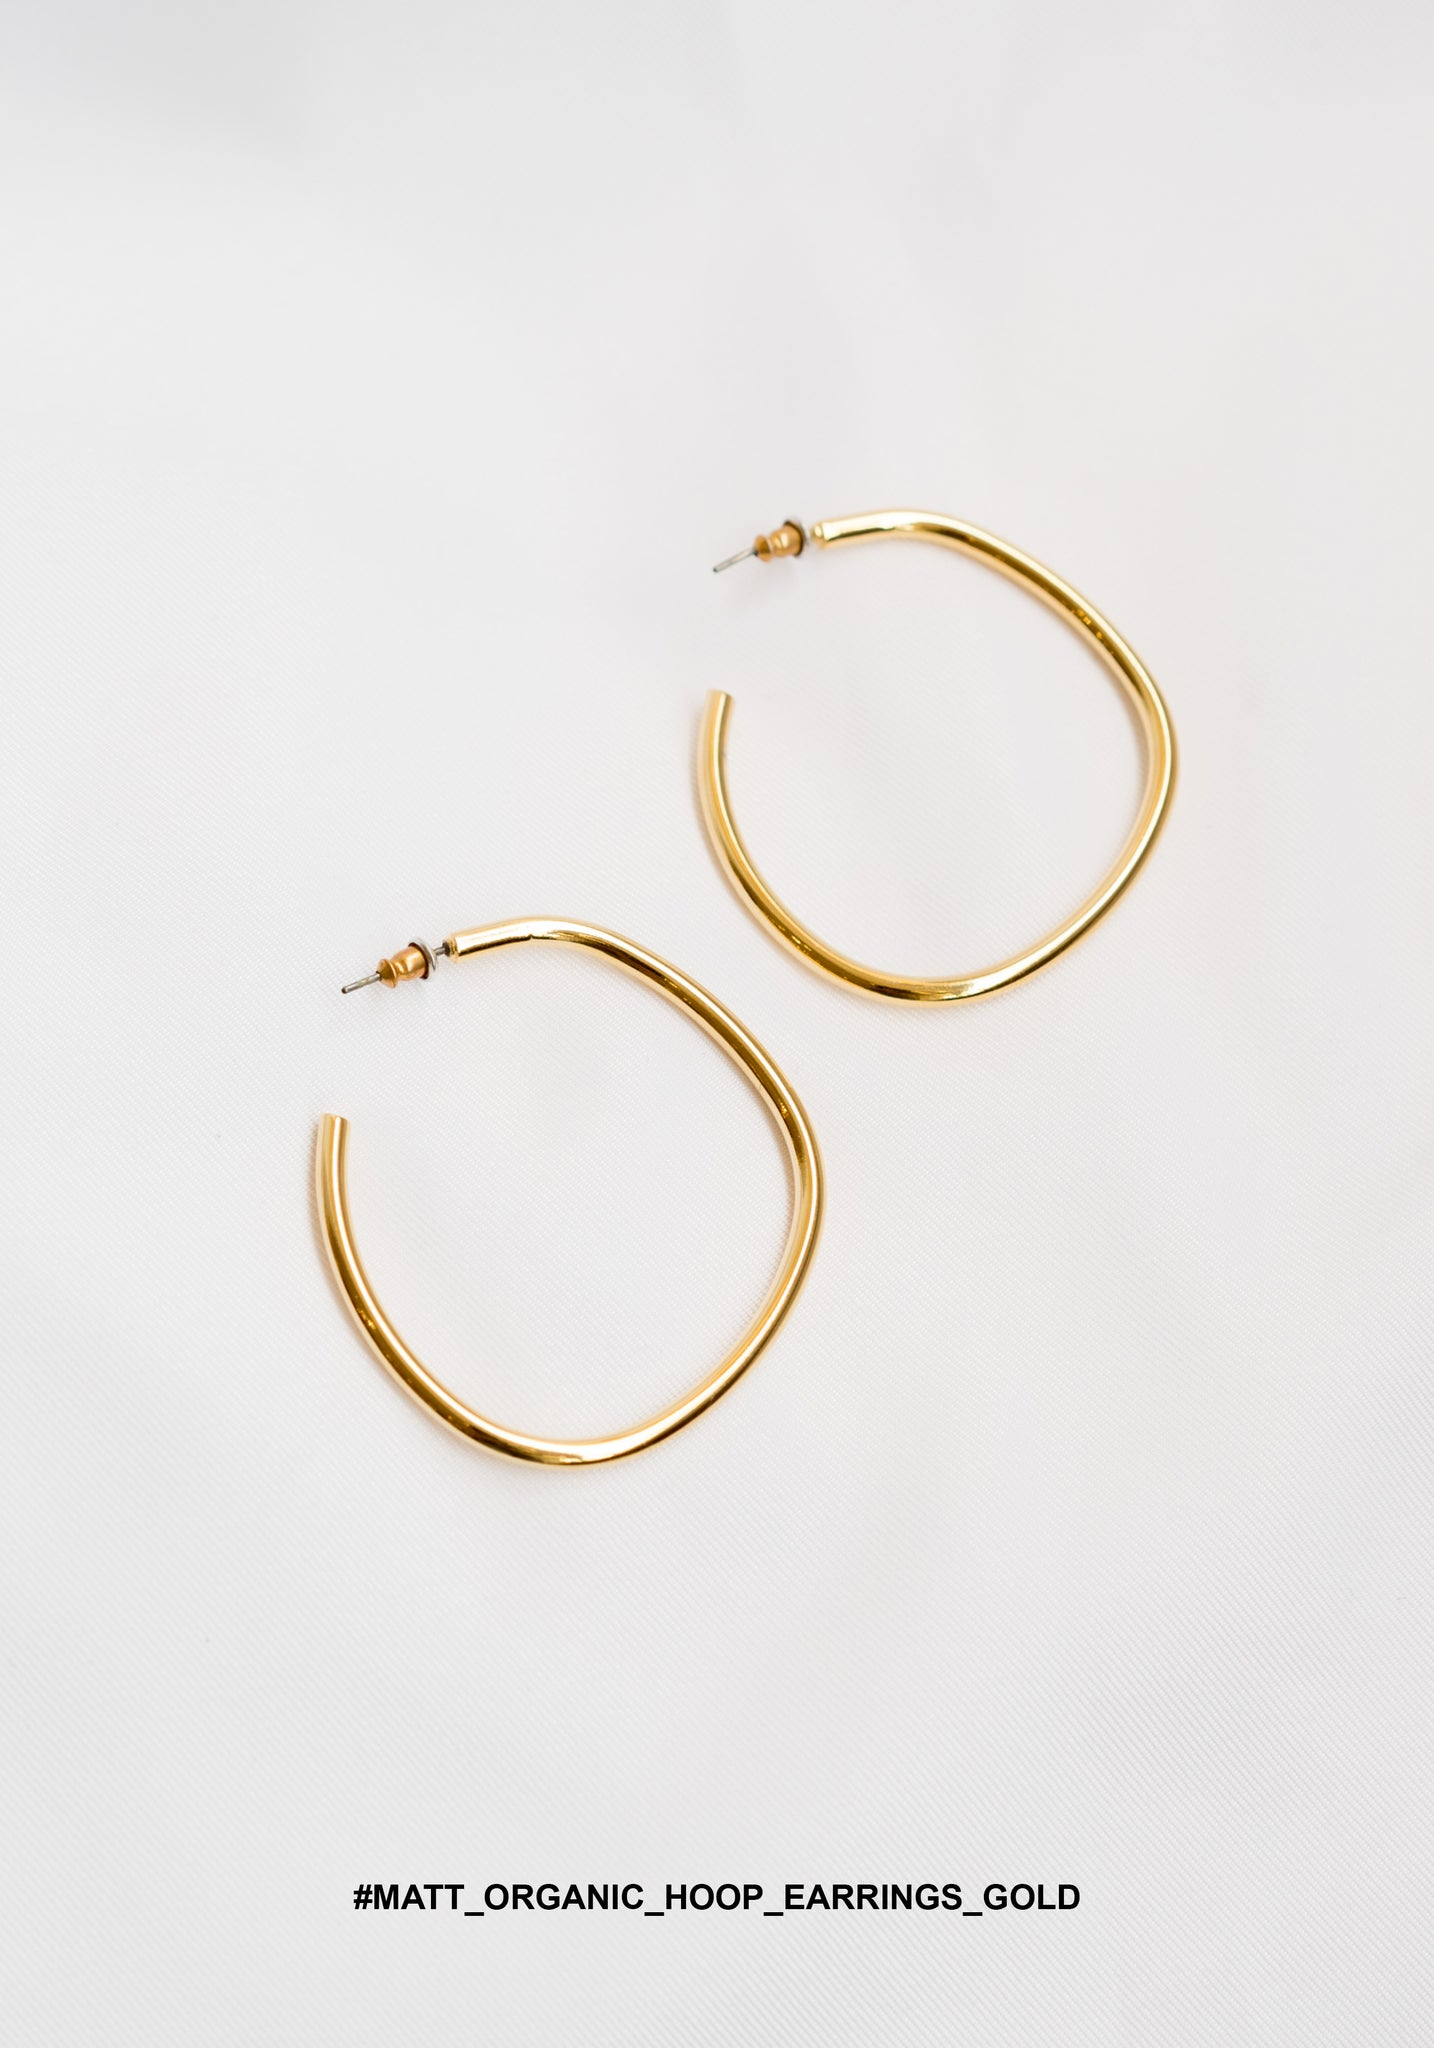 Matt Organic Hoop Earrings Gold - whoami